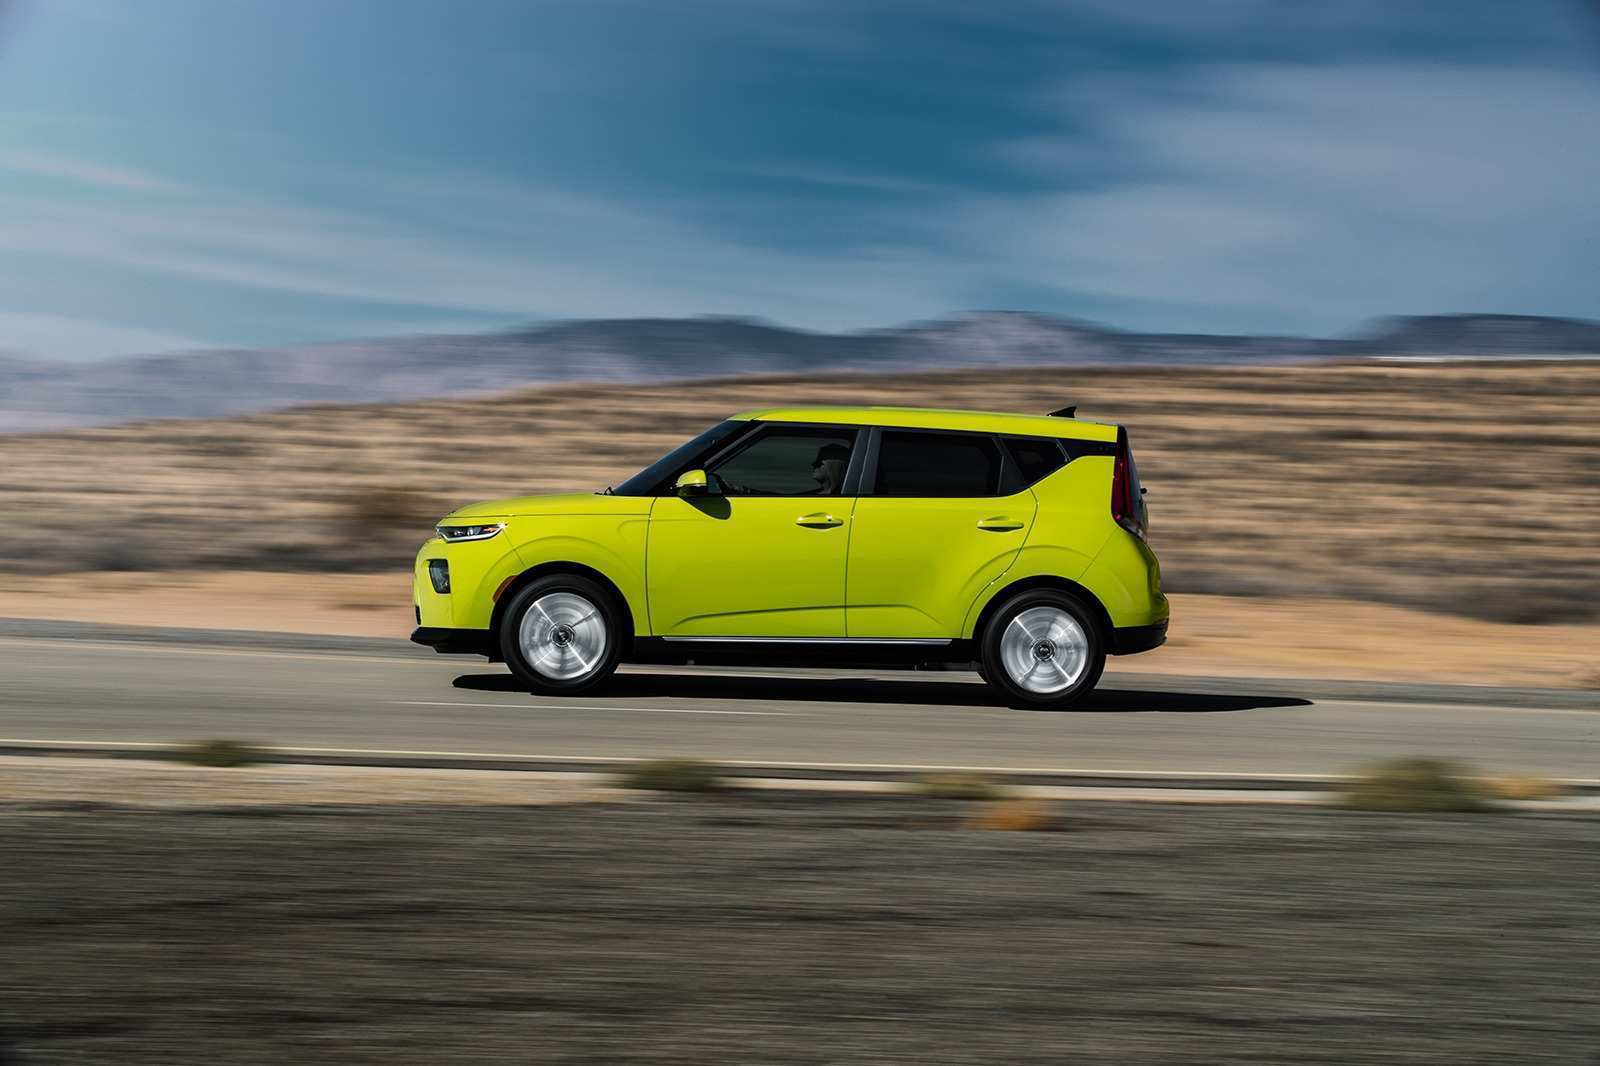 57 All New Kia E Soul 2020 Price Price And Release Date